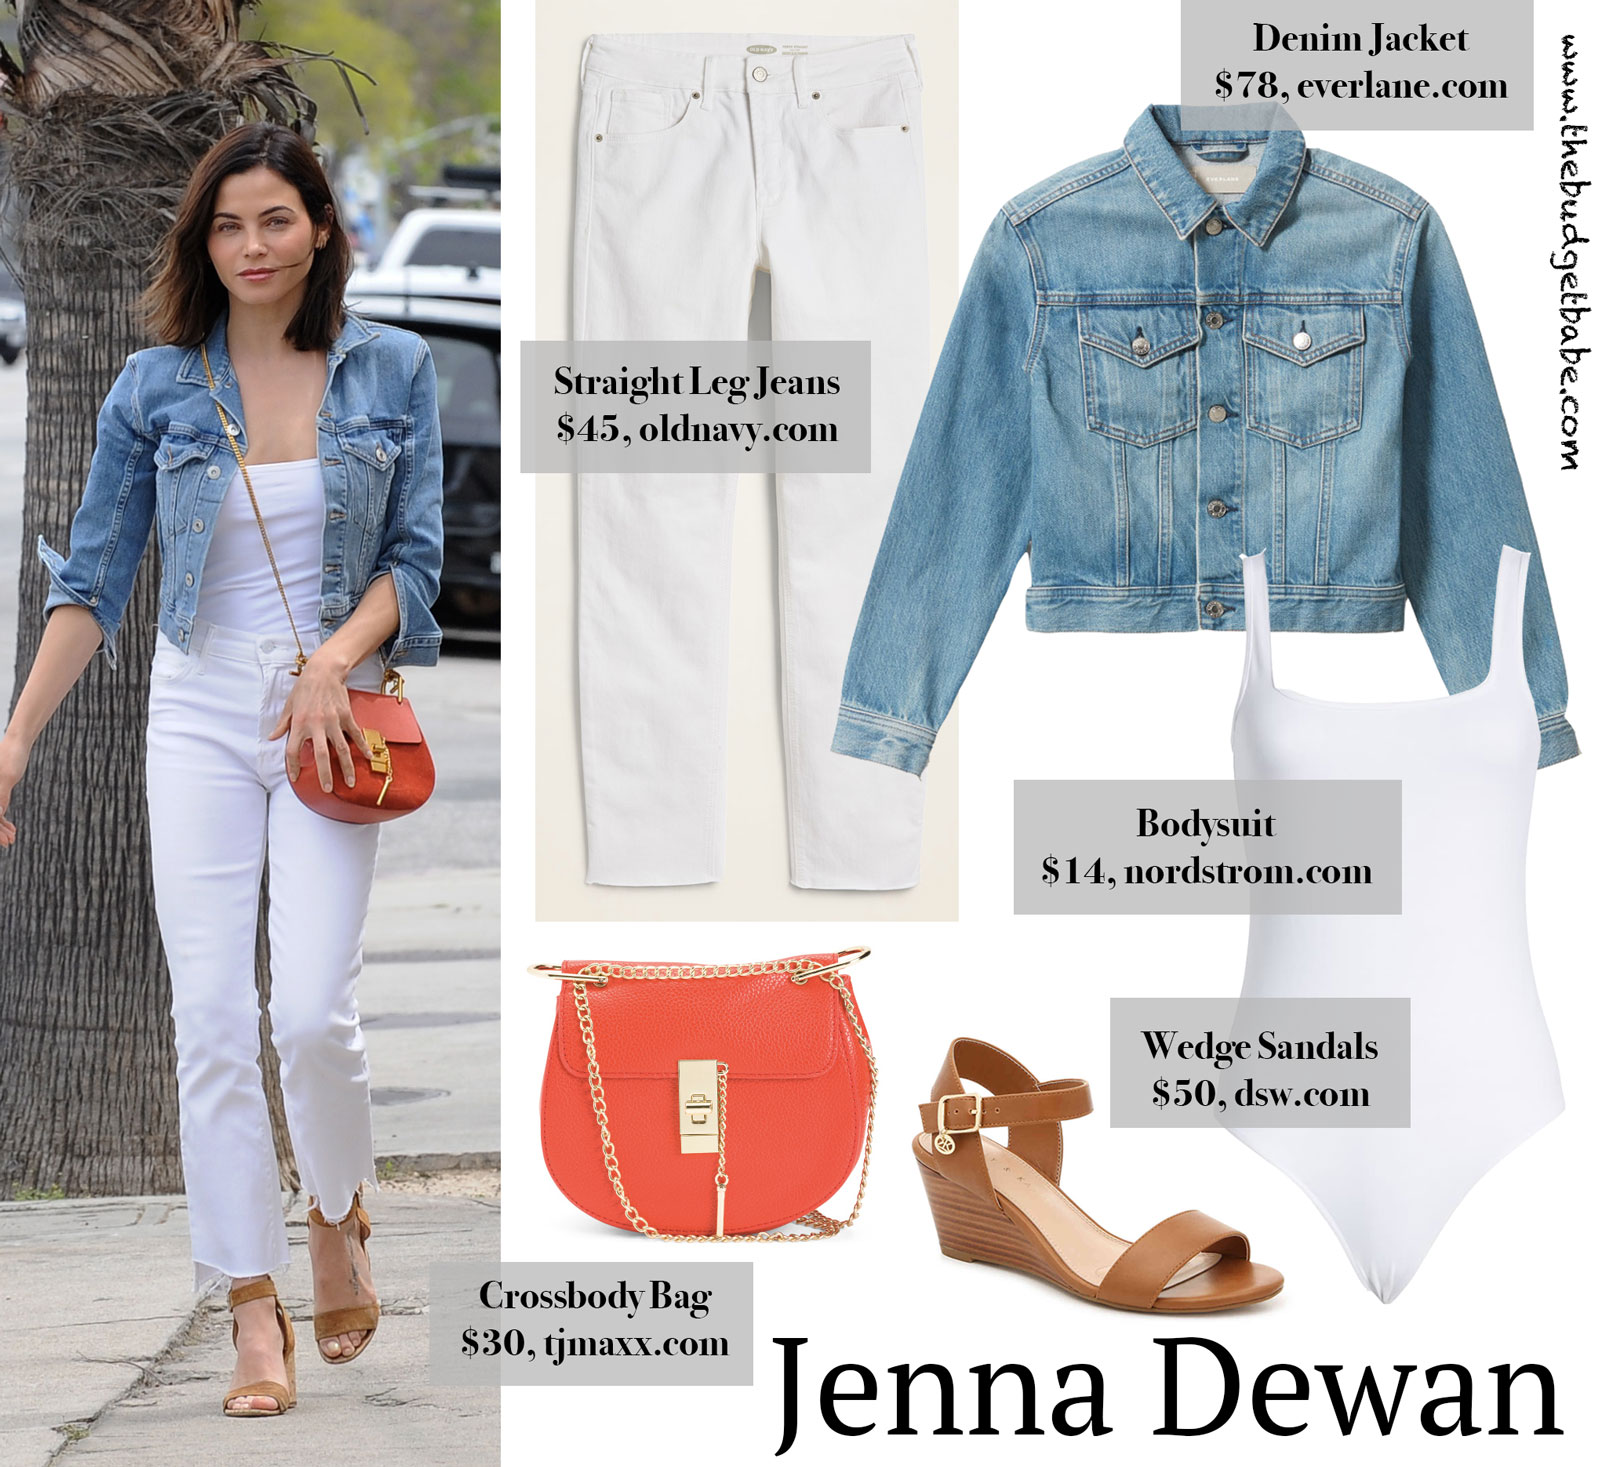 Jenna Dewan White Jeans Denim Jacket Look for Less